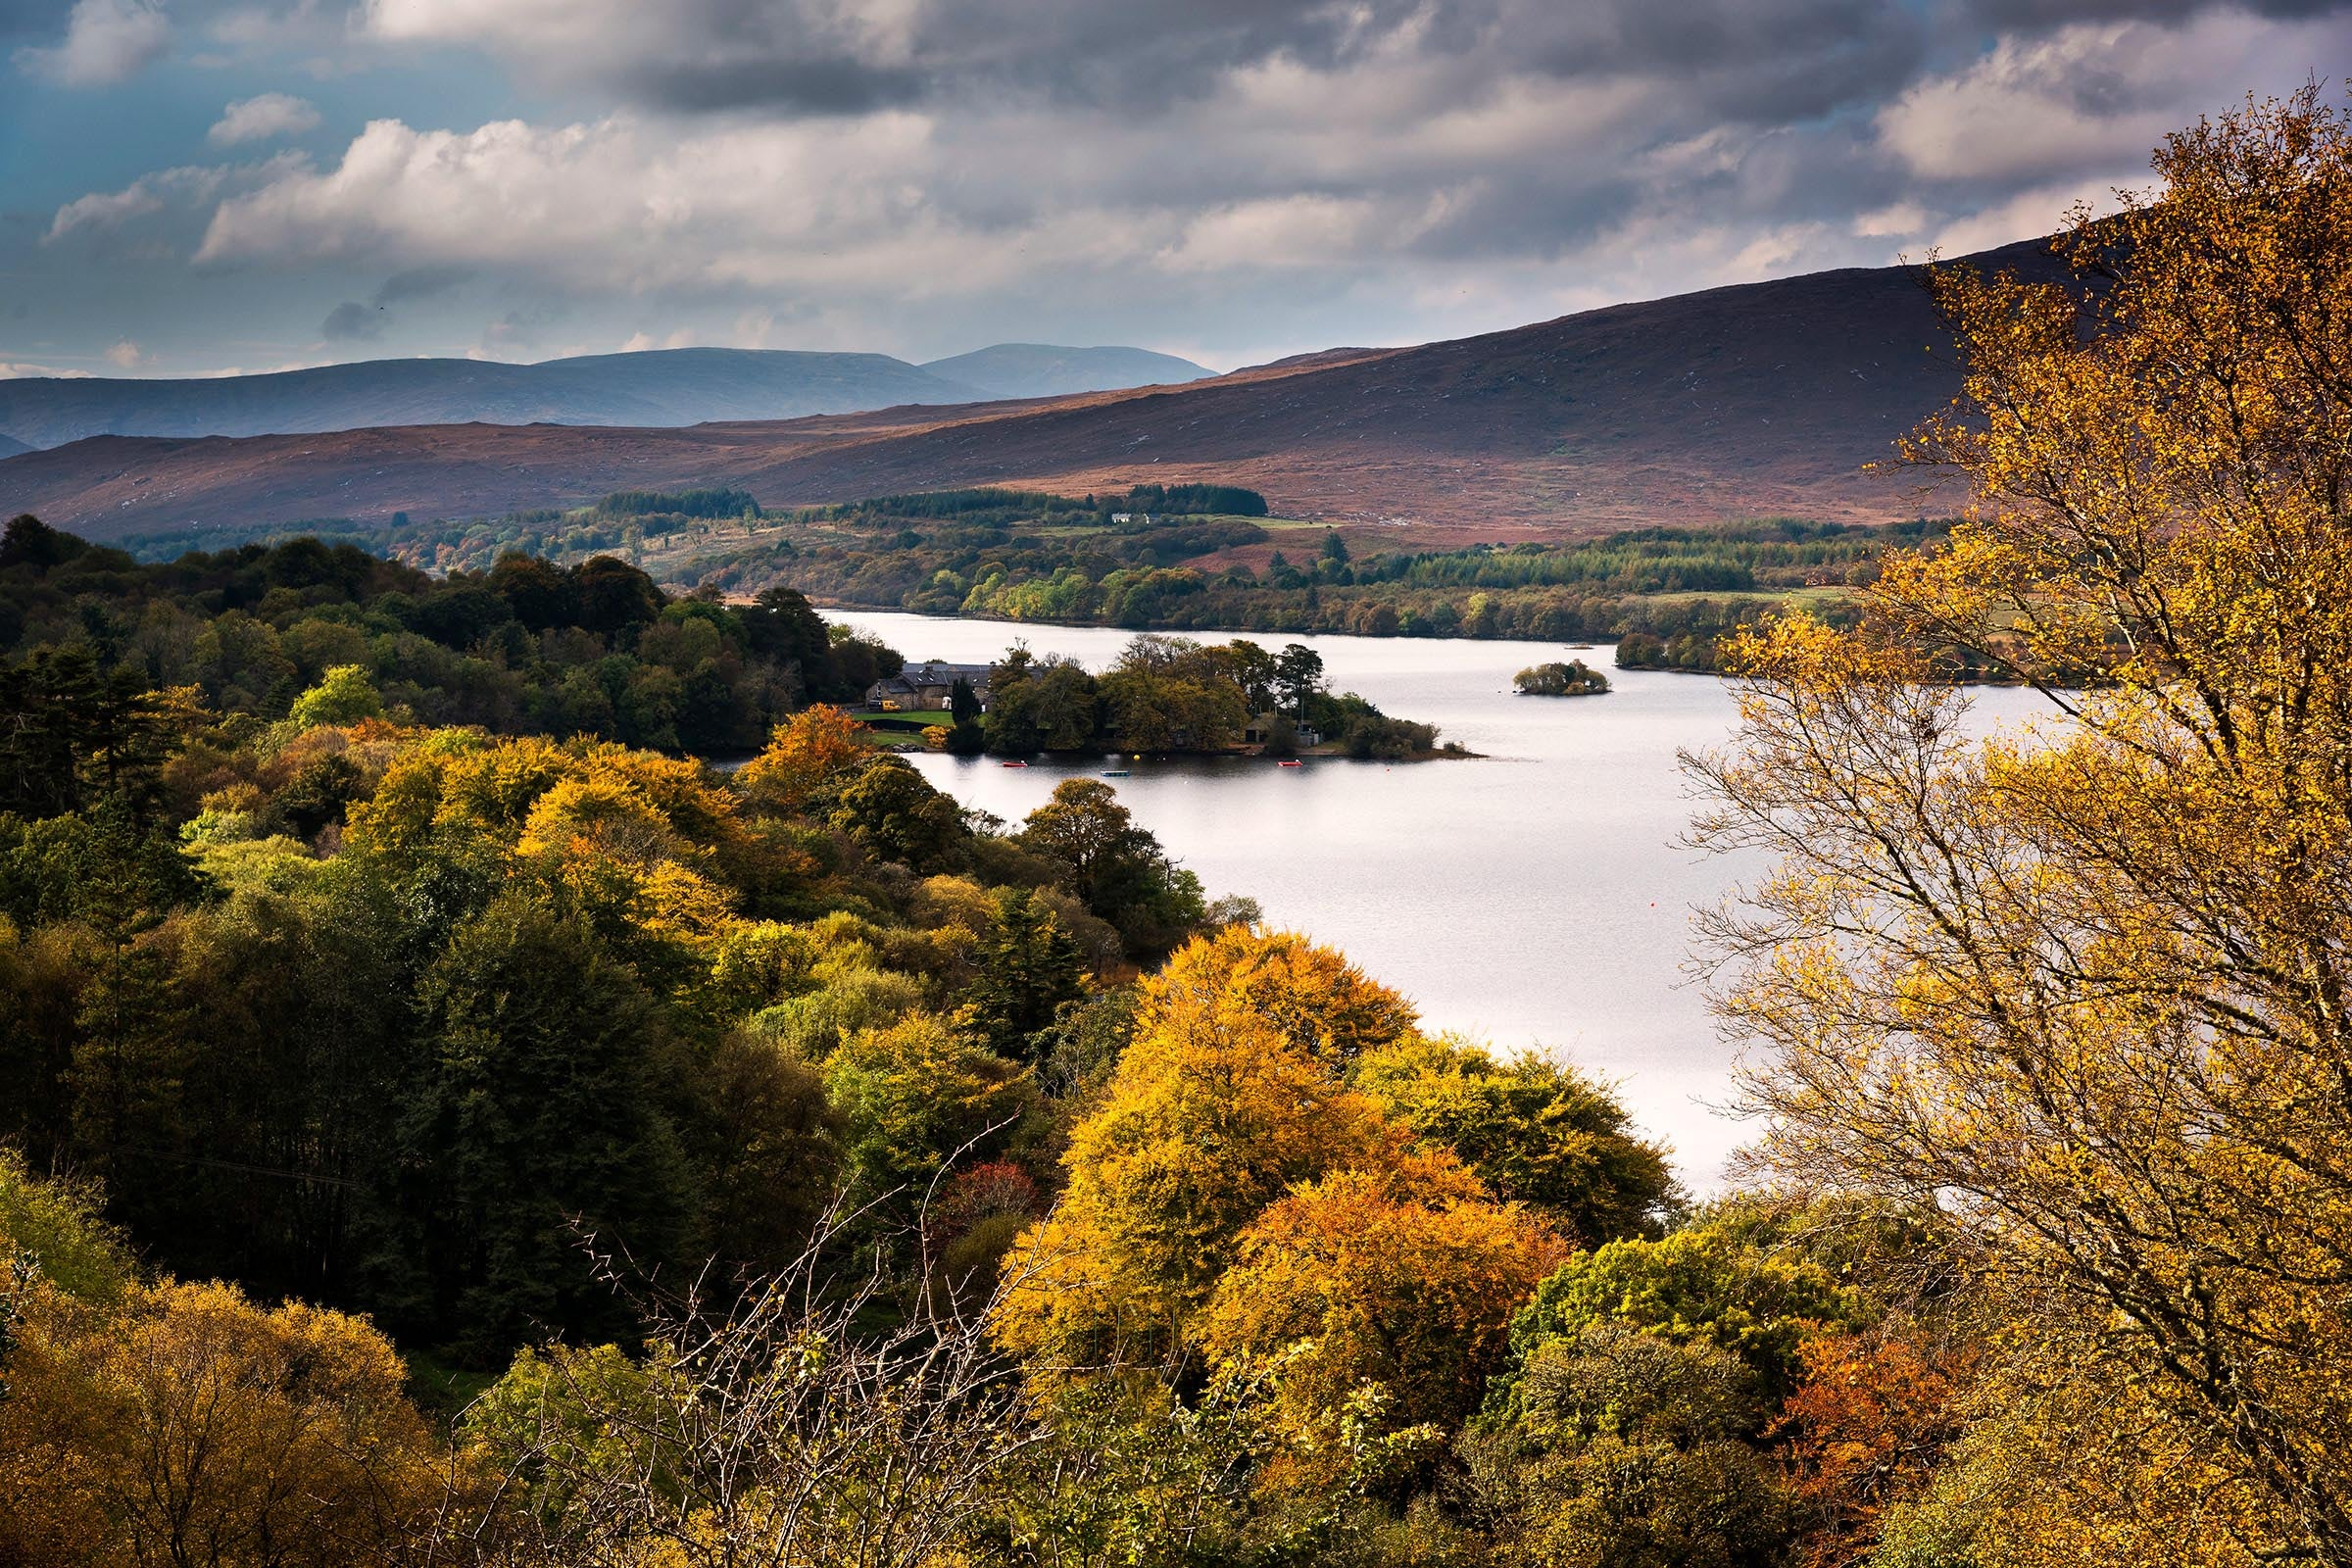 View over the lake and mountains in the distance at Glenveagh National Park, County Donegal.